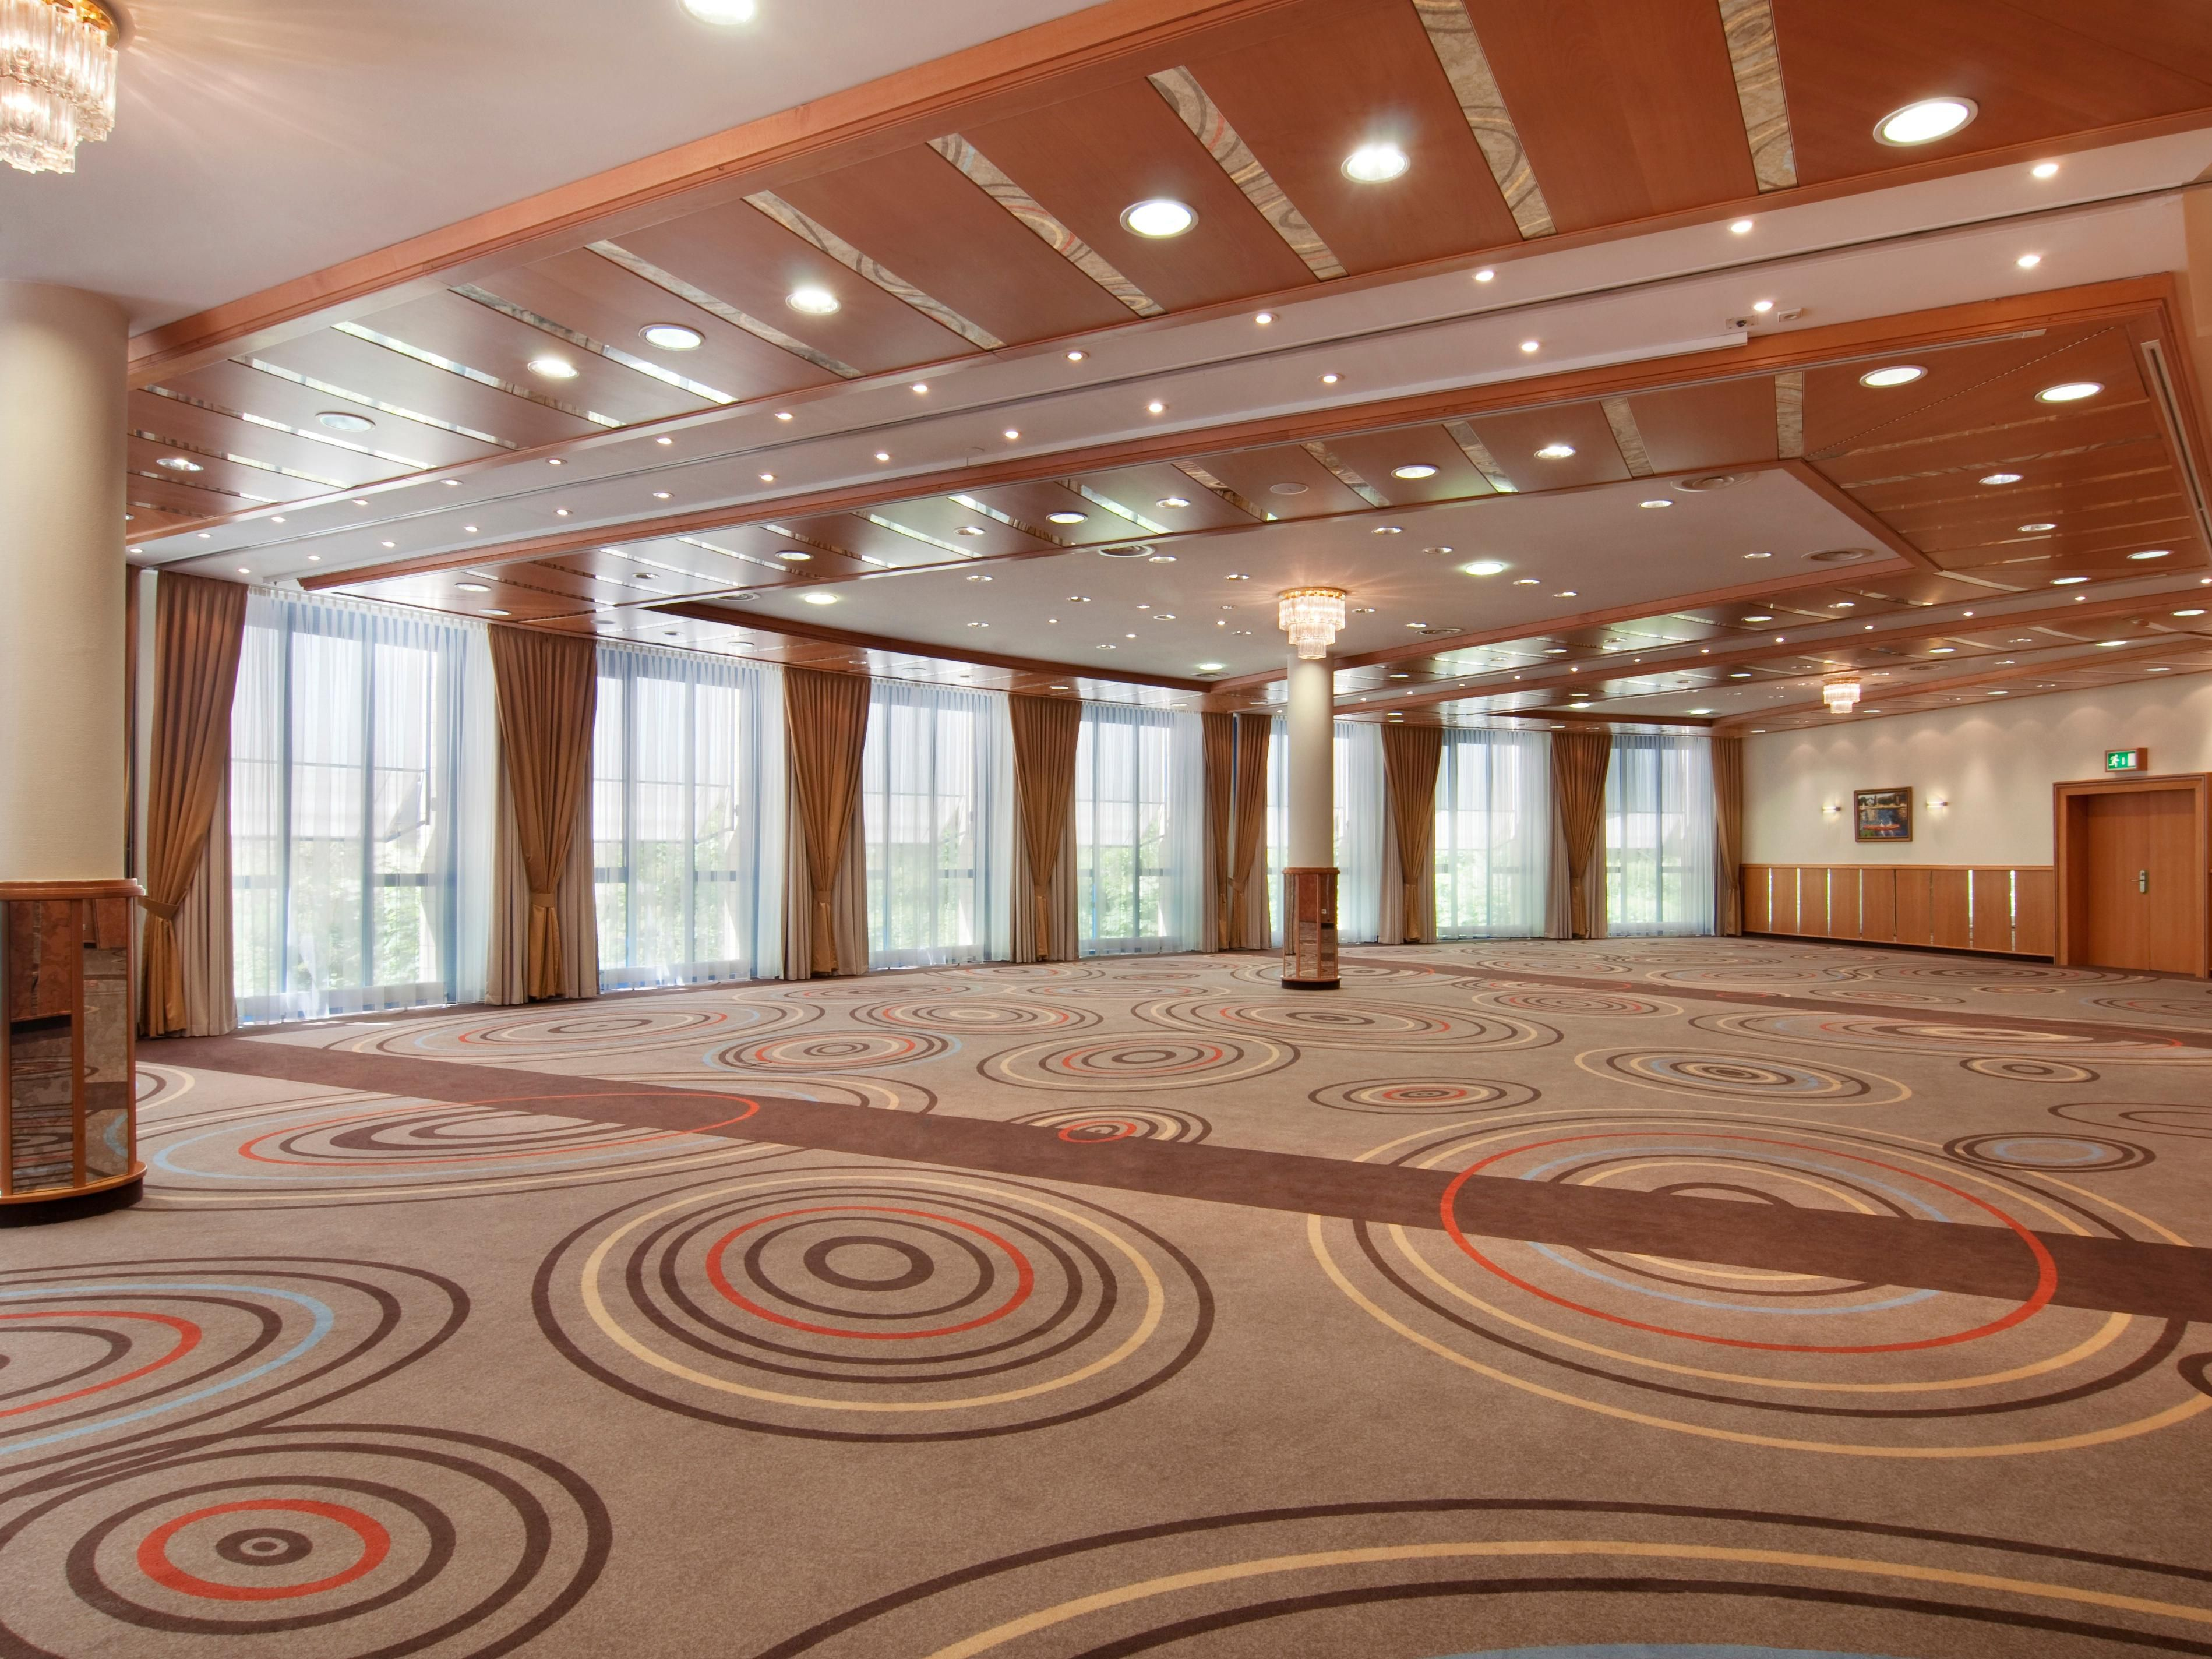 Sala Grande for your event with natural Daylight